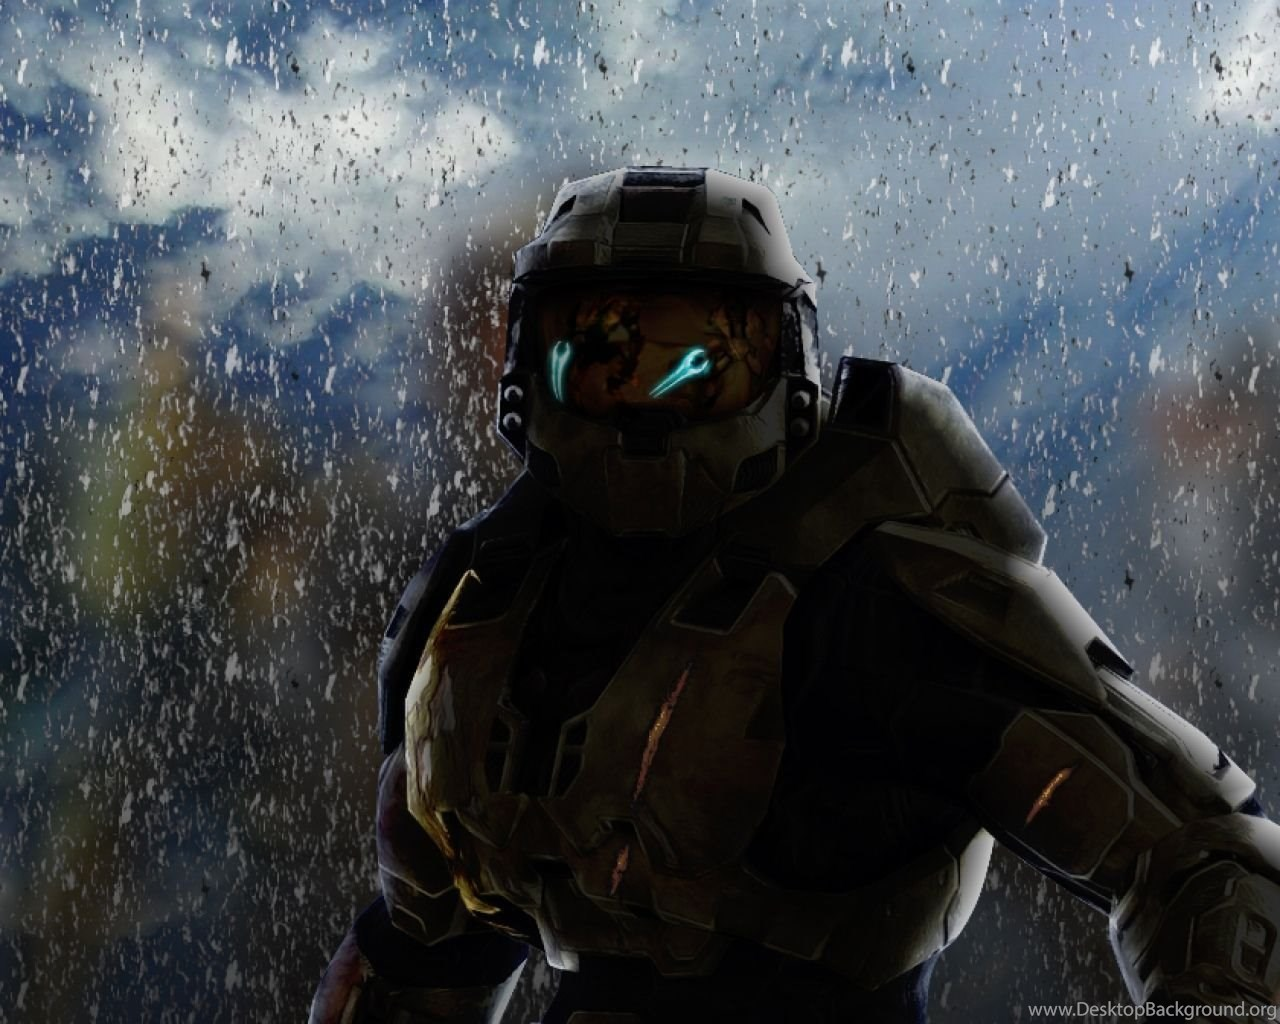 Download Wallpapers 2560x1024 Halo, Soldier, Armor, Look